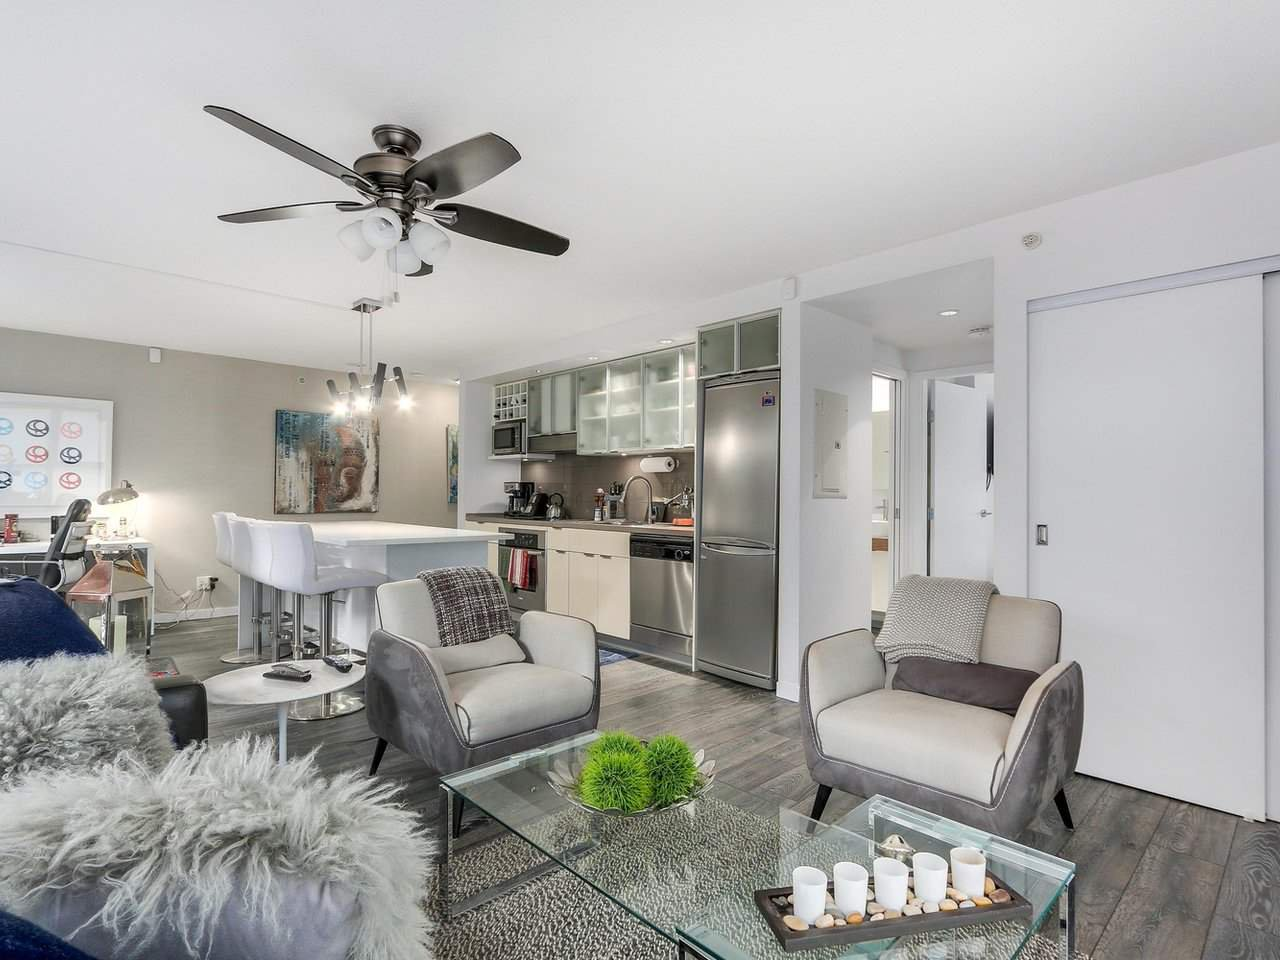 Photo 6: Photos: 217 168 POWELL Street in Vancouver: Downtown VE Condo for sale (Vancouver East)  : MLS®# R2386644